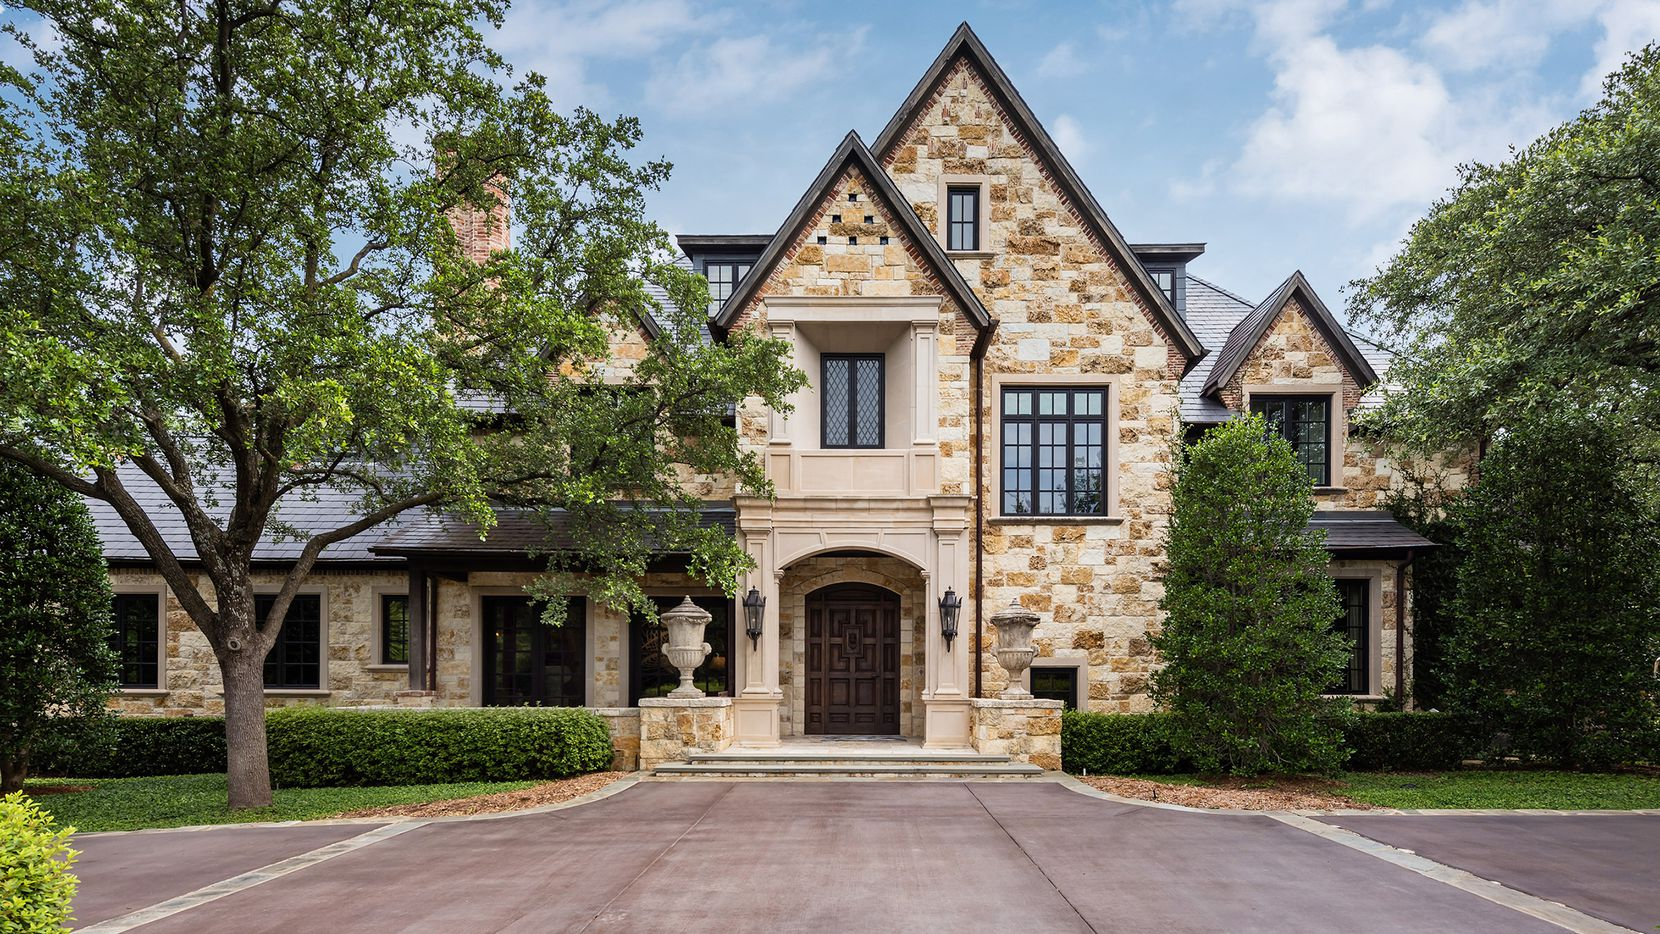 The 2-acre estate at 5031 Deloache Ave. in Preston Hollow features a media room, sport court, putting green and pool.